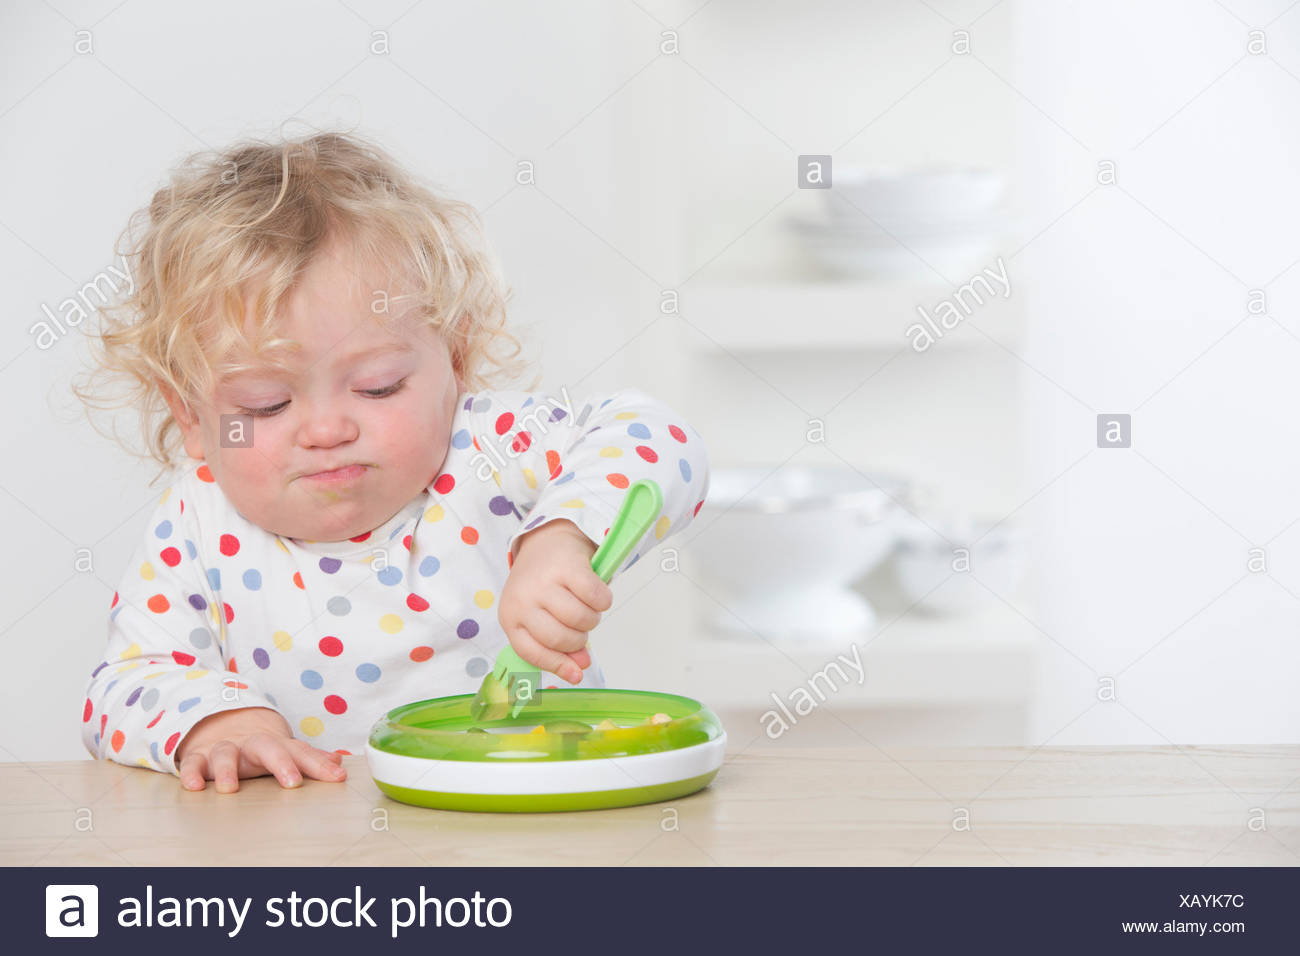 Determined baby eating avocado with fork - Stock Image